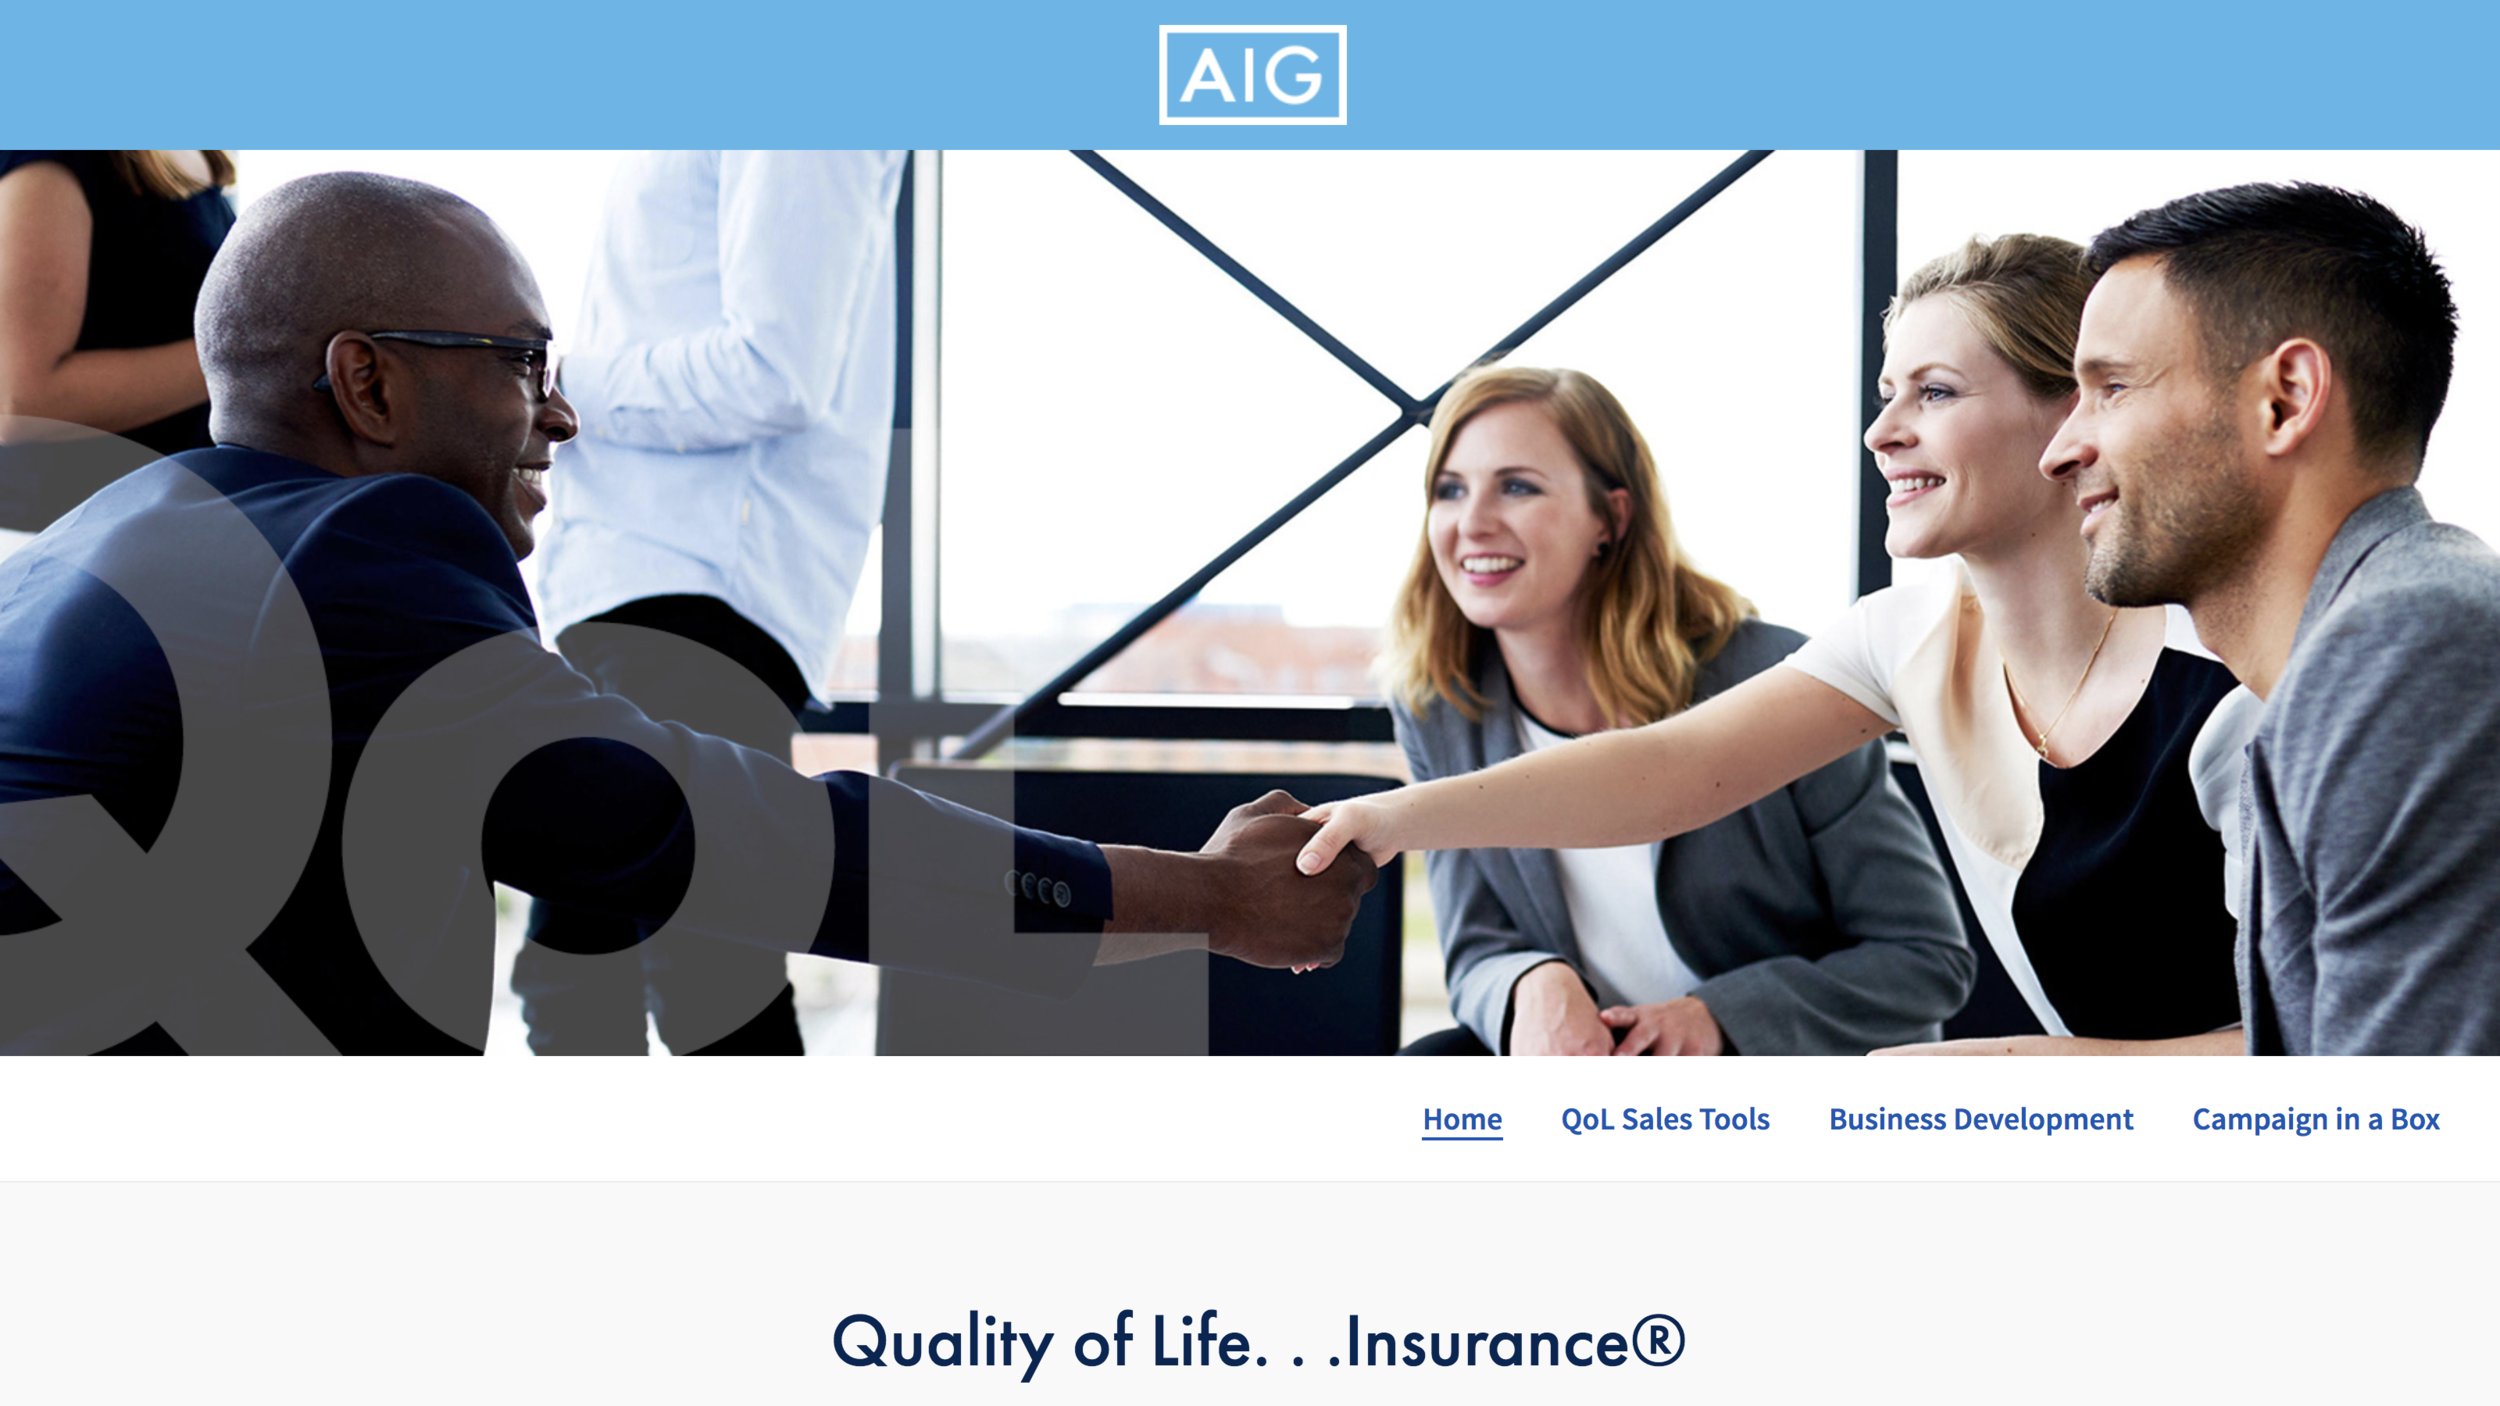 AIG Quality of Life…Insurance ® - Learn. Train. Promote Sell:A compelling life insurance product suite with living benefits automatically included at no extra charge with every life policy. Strong compensation, bonus program and support are just the beginning of the story at AIG Partners Group